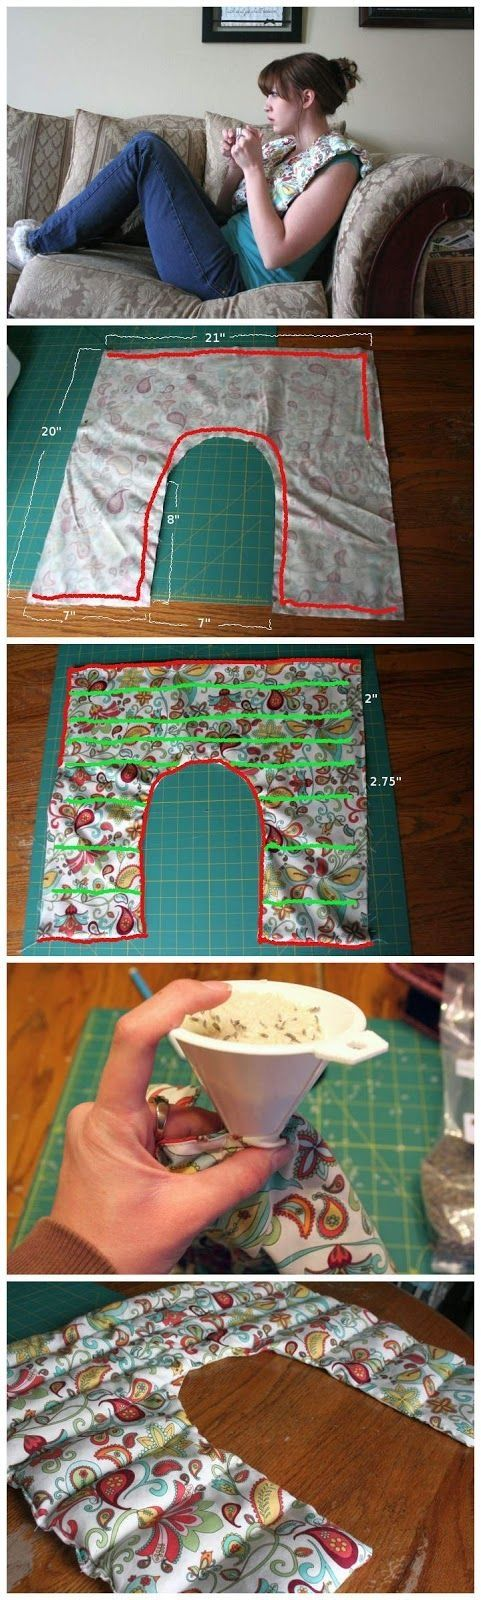 Rice Shoulder Heating Pad, with Lavender Project by jillian